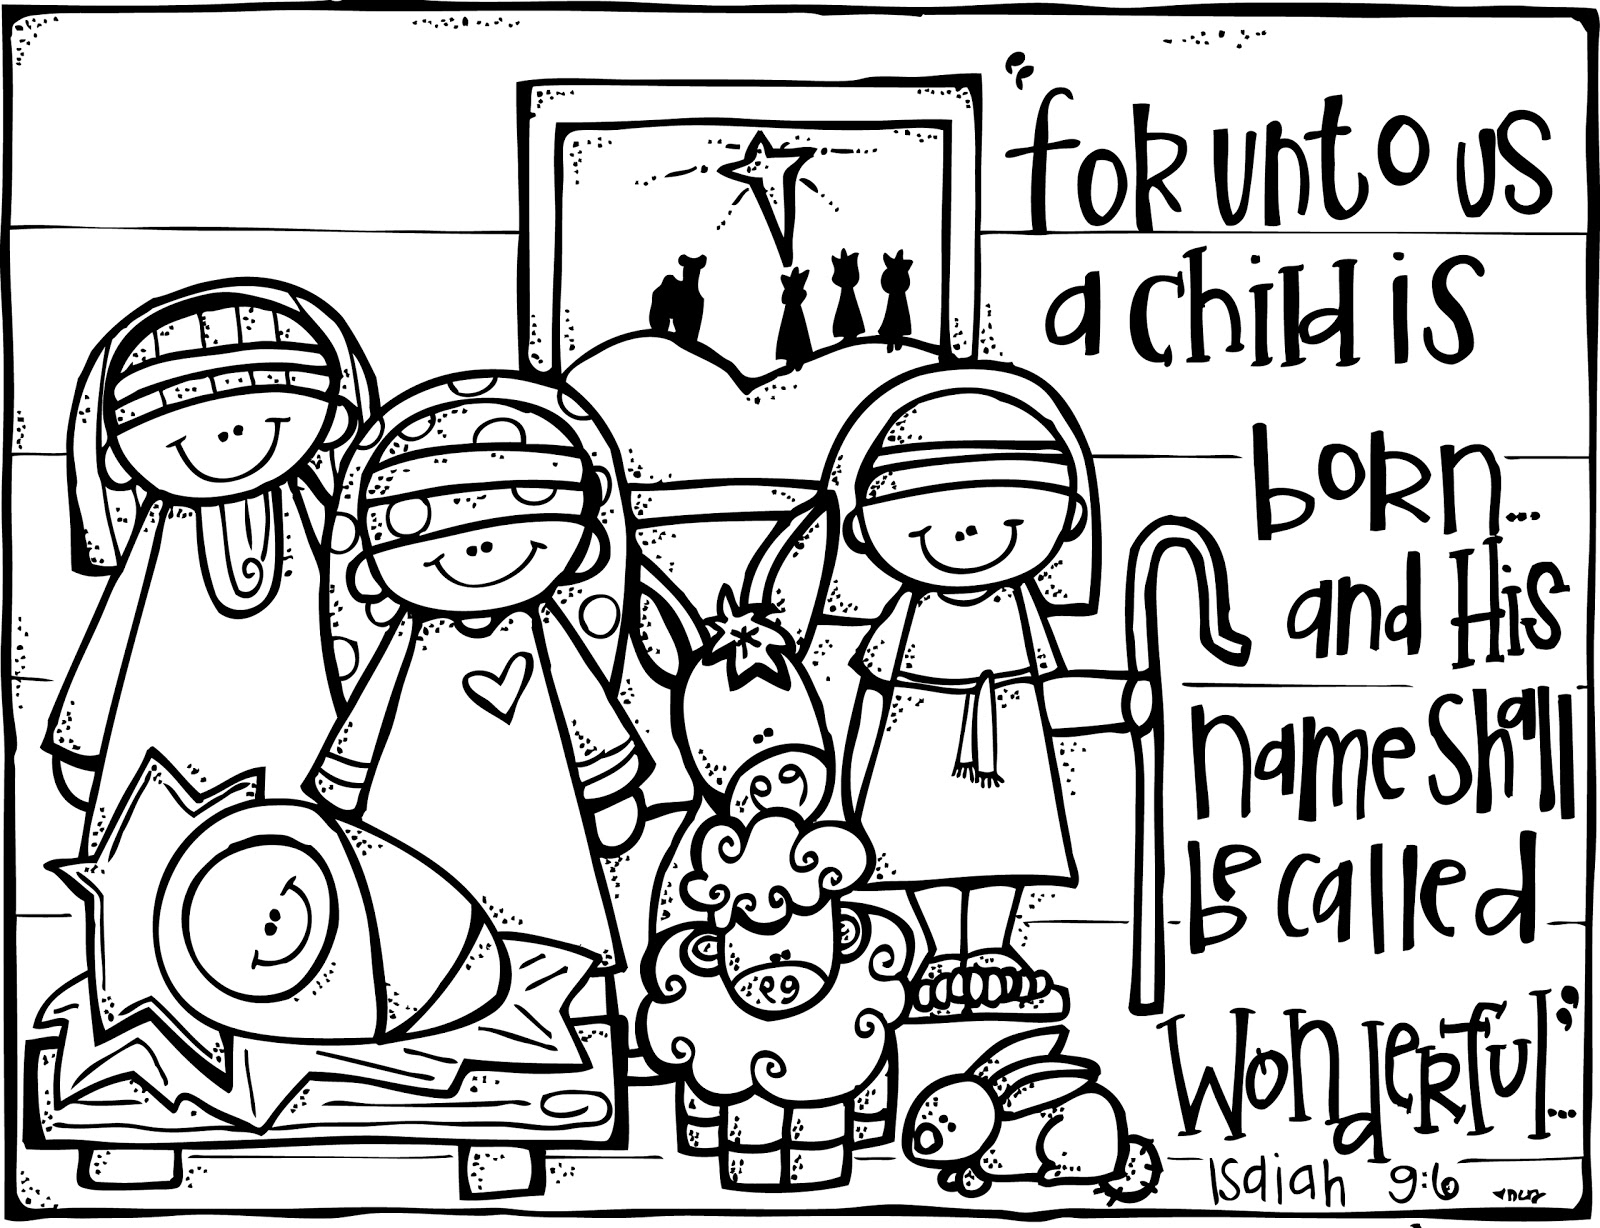 christmas christian coloring pages christian christmas coloring pages coloring pages for kids coloring pages christmas christian